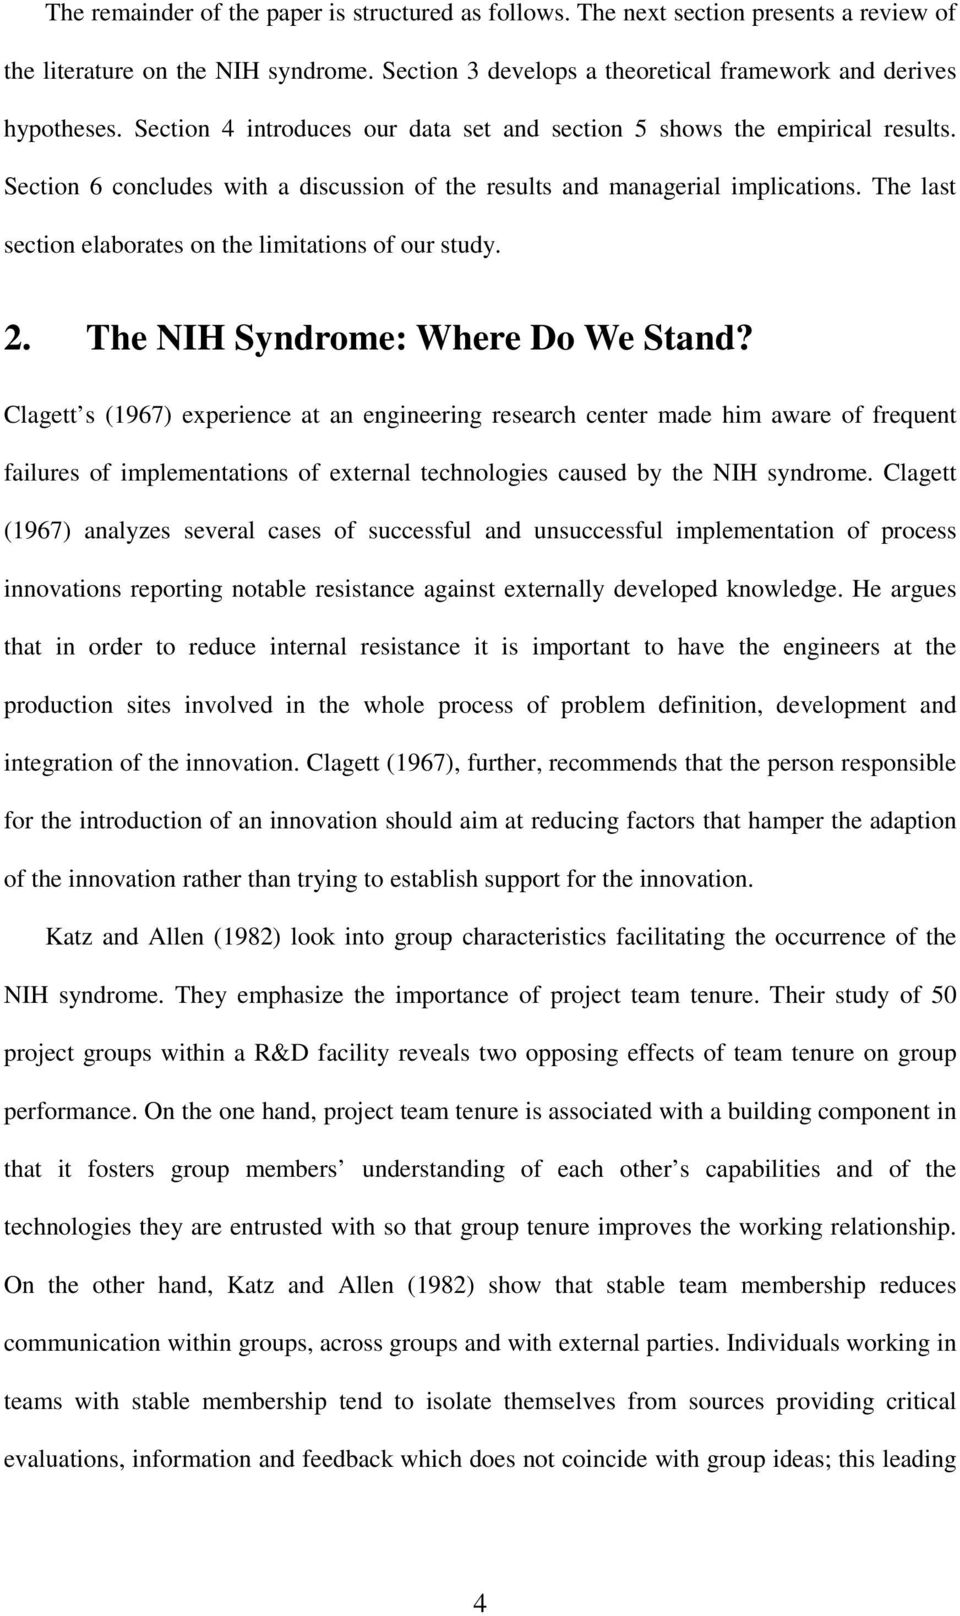 The last section elaborates on the limitations of our study. 2. The NIH Syndrome: Where Do We Stand?